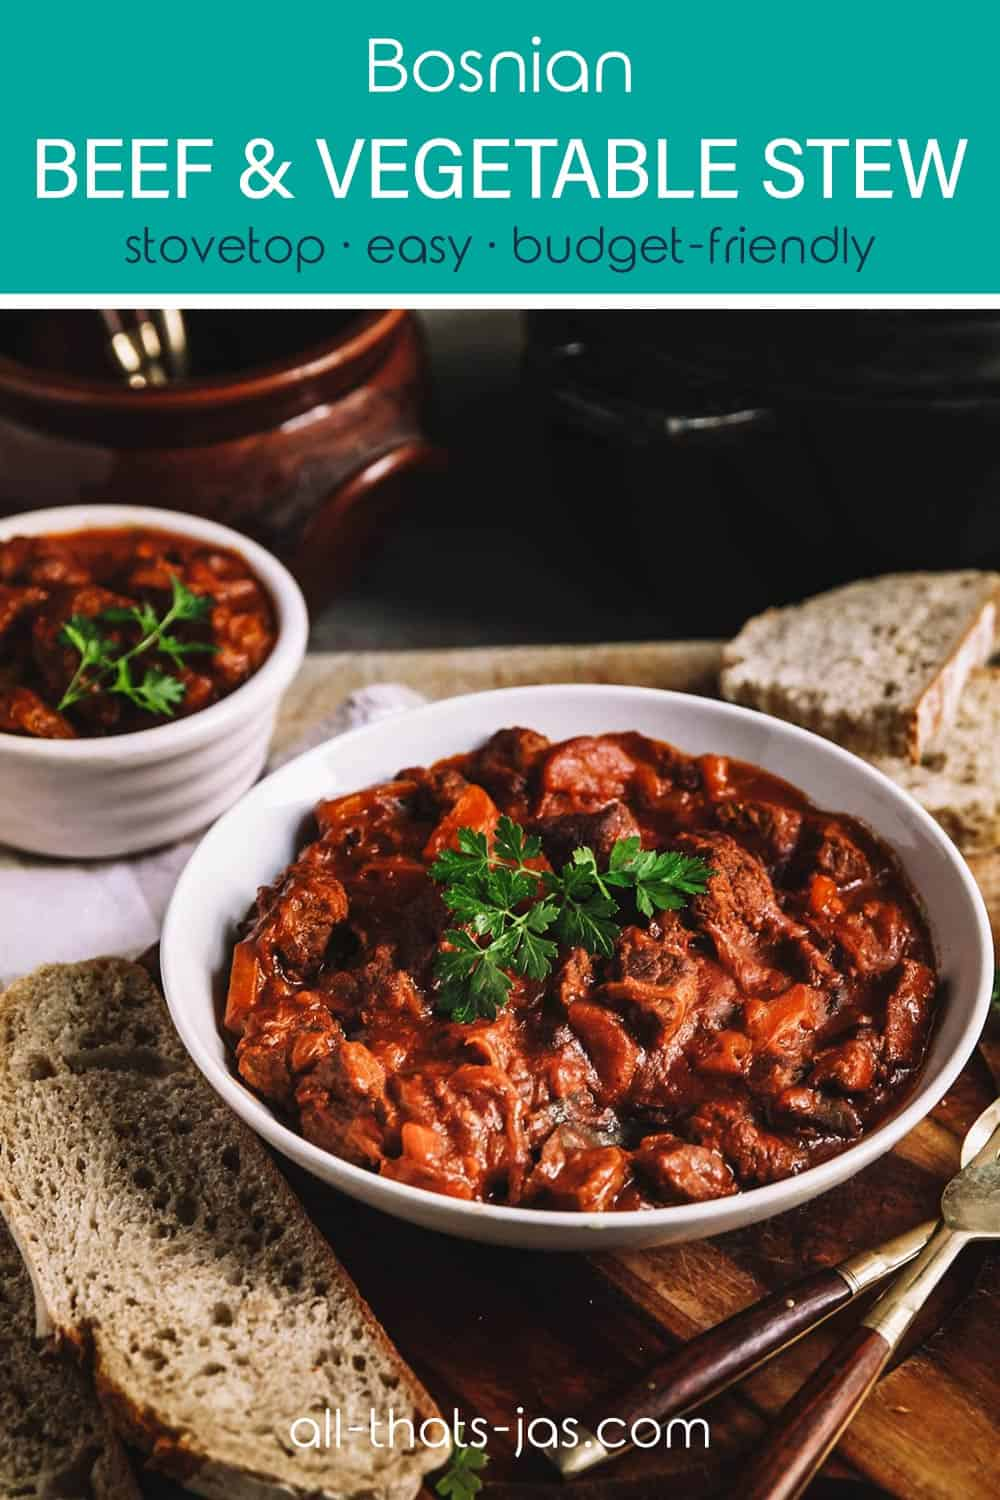 Table with stew servings with a text overlay